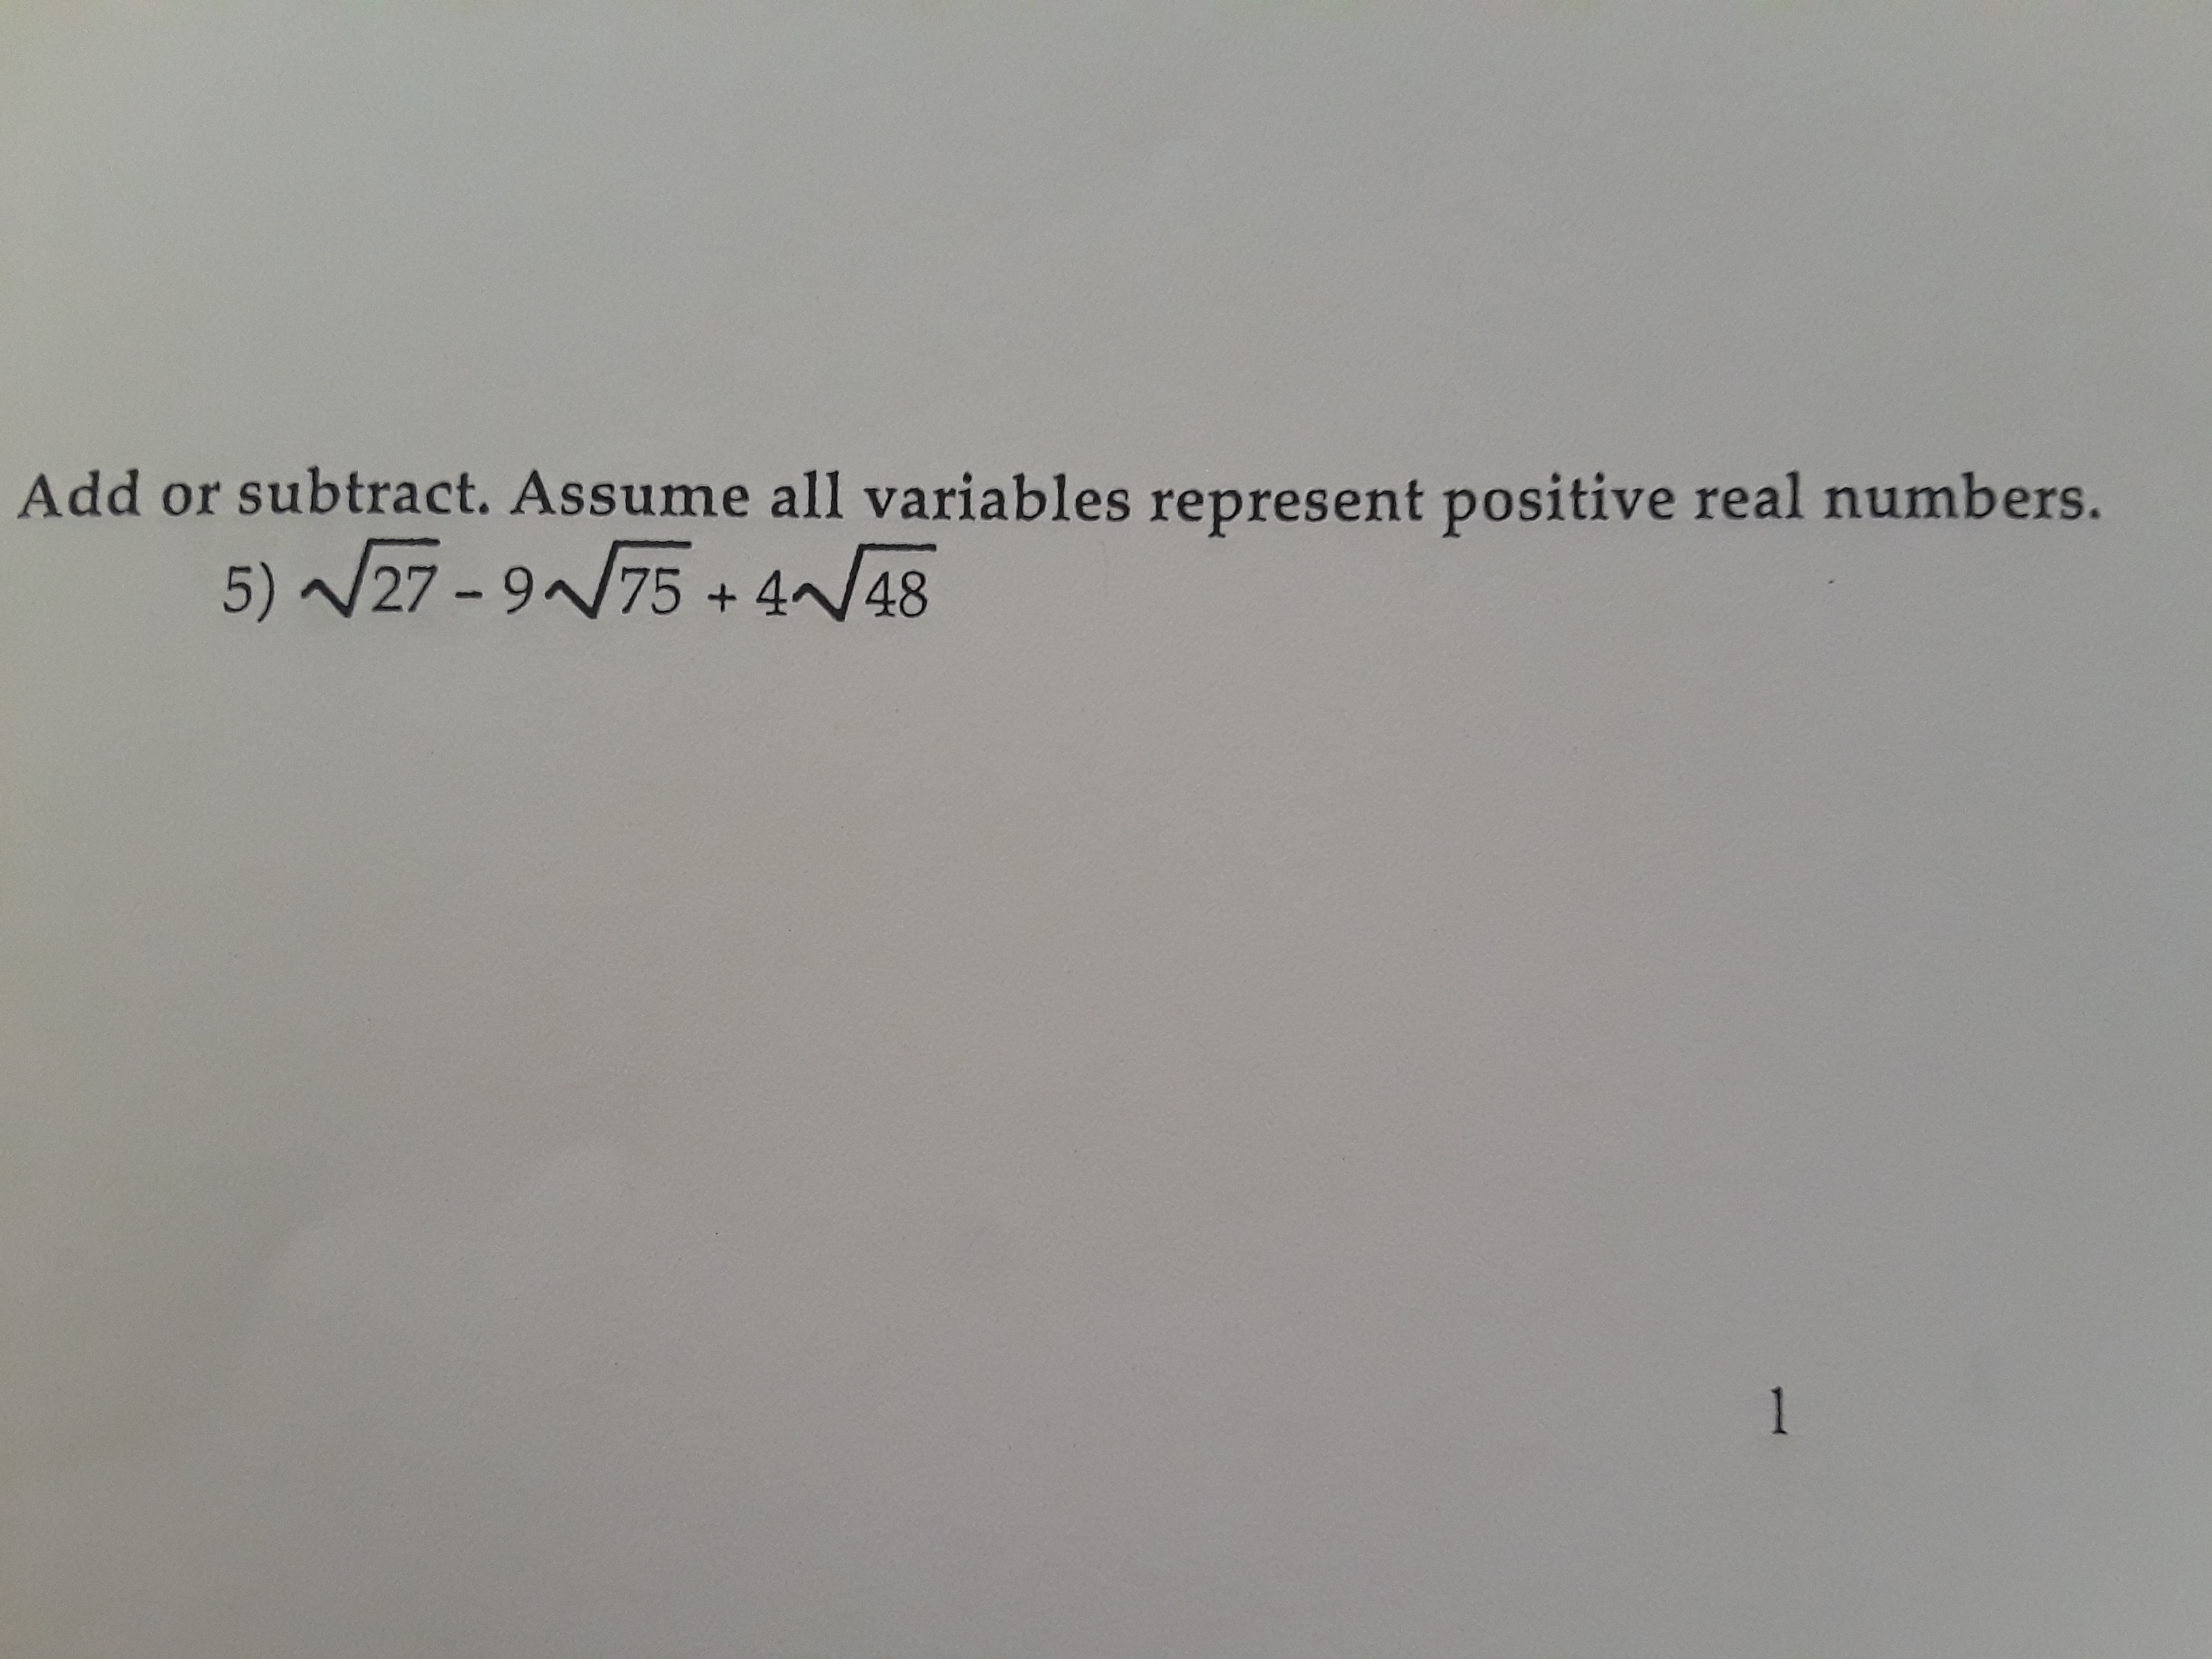 Add or subtract. Assume all variables represent positive real numbers. 5) 27-9 75+4/48 1